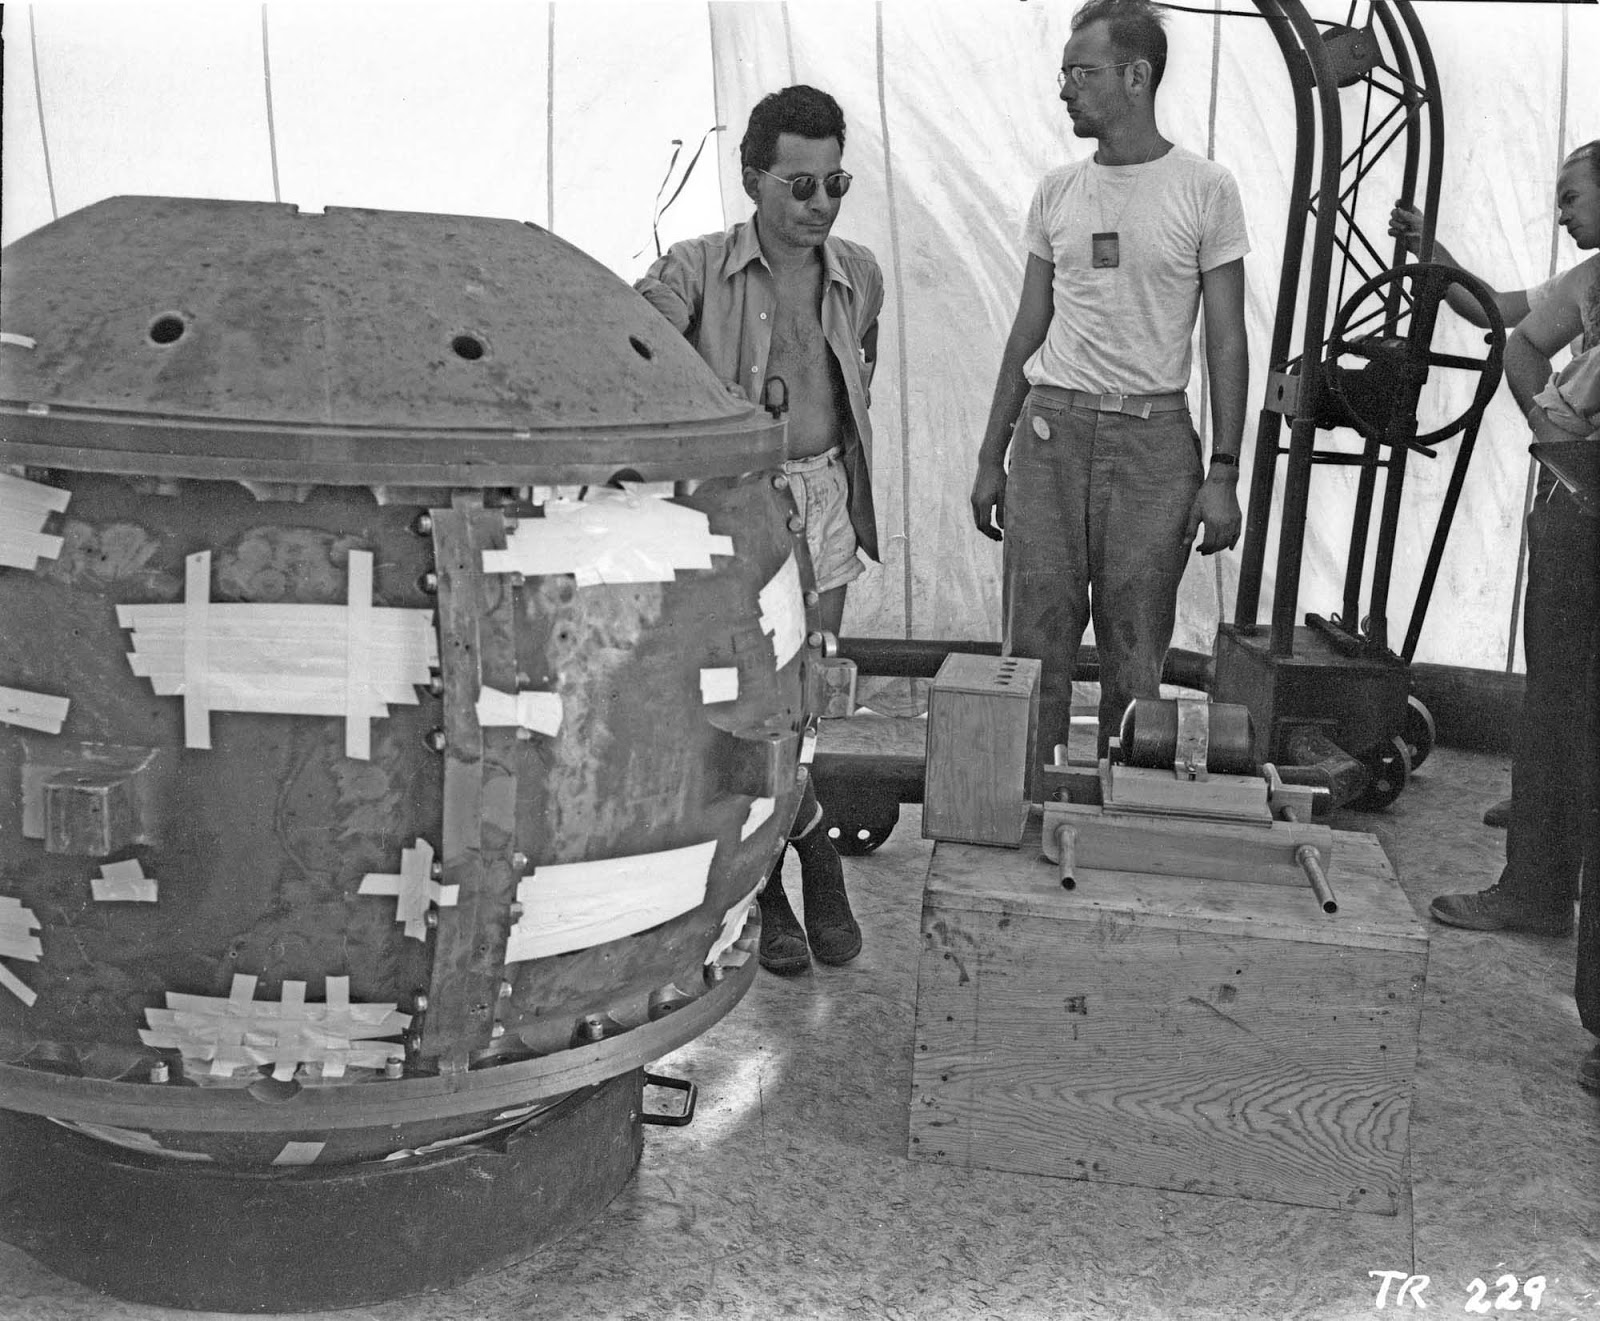 Louis Slotin and Herbert Lehr with the Gadget prior to insertion of the tamper plug (visible in front of Lehr's left knee).